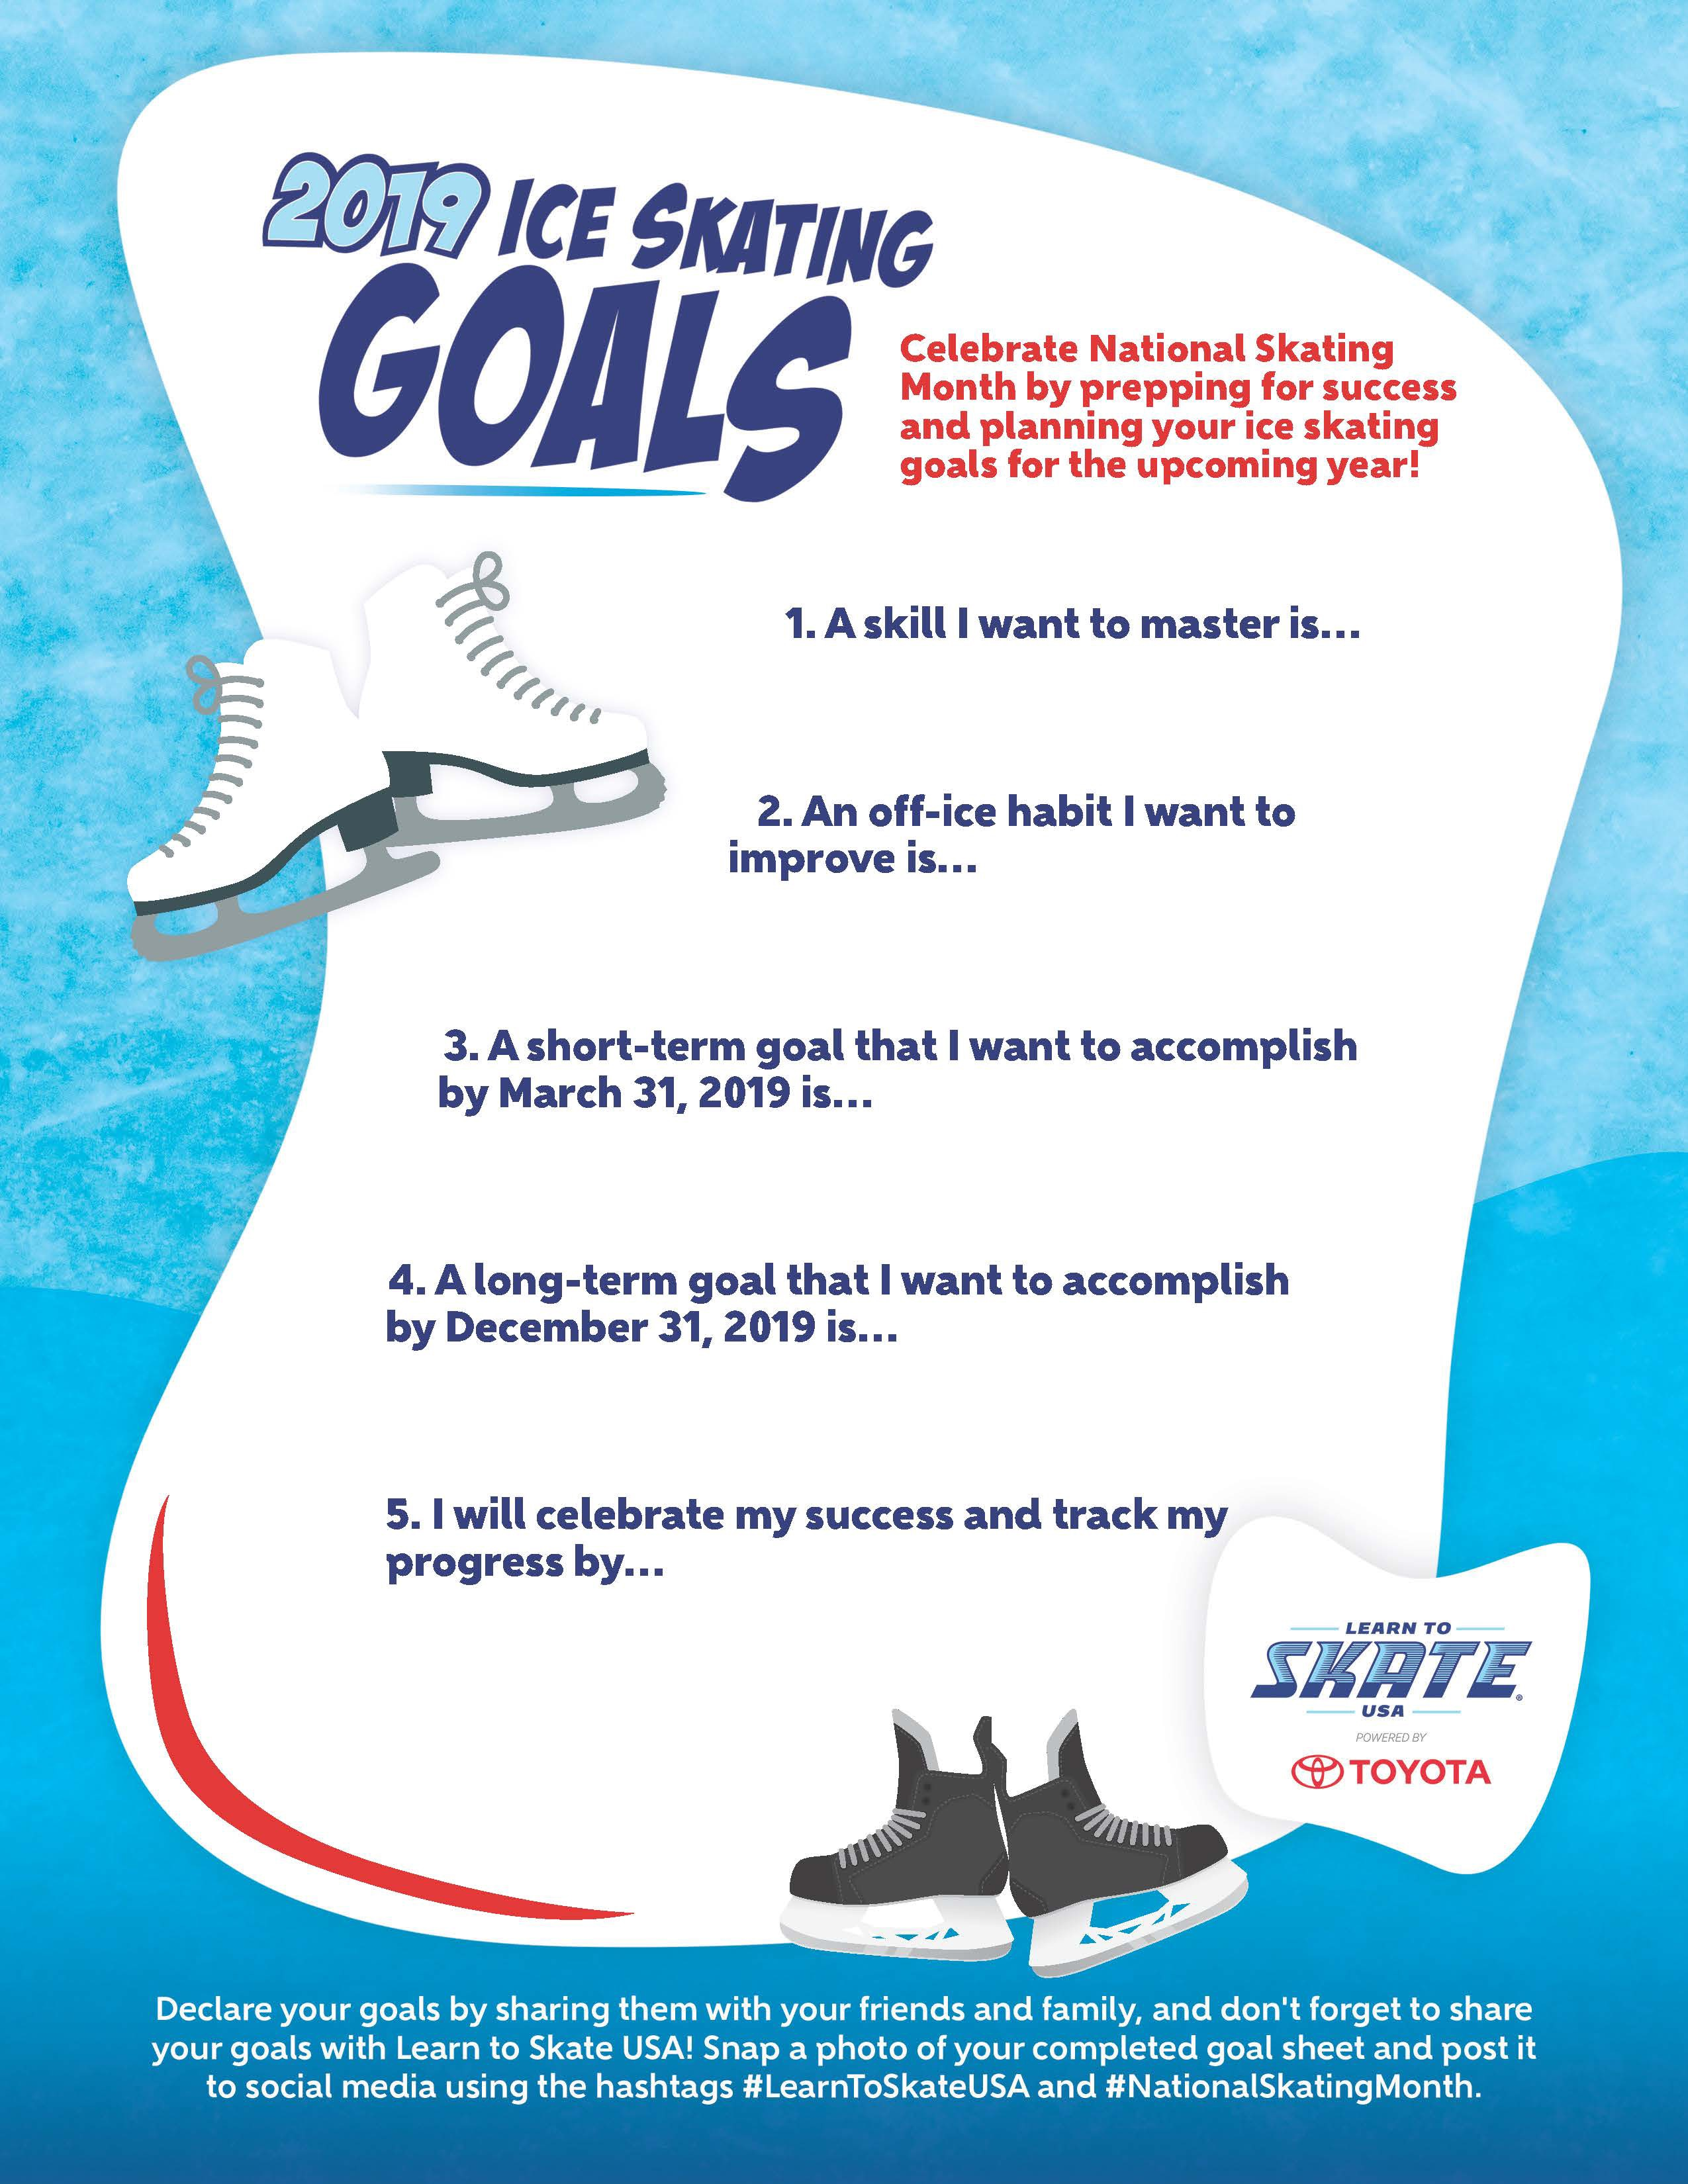 5 Ways to Celebrate National Skating Month - Learn To Skate